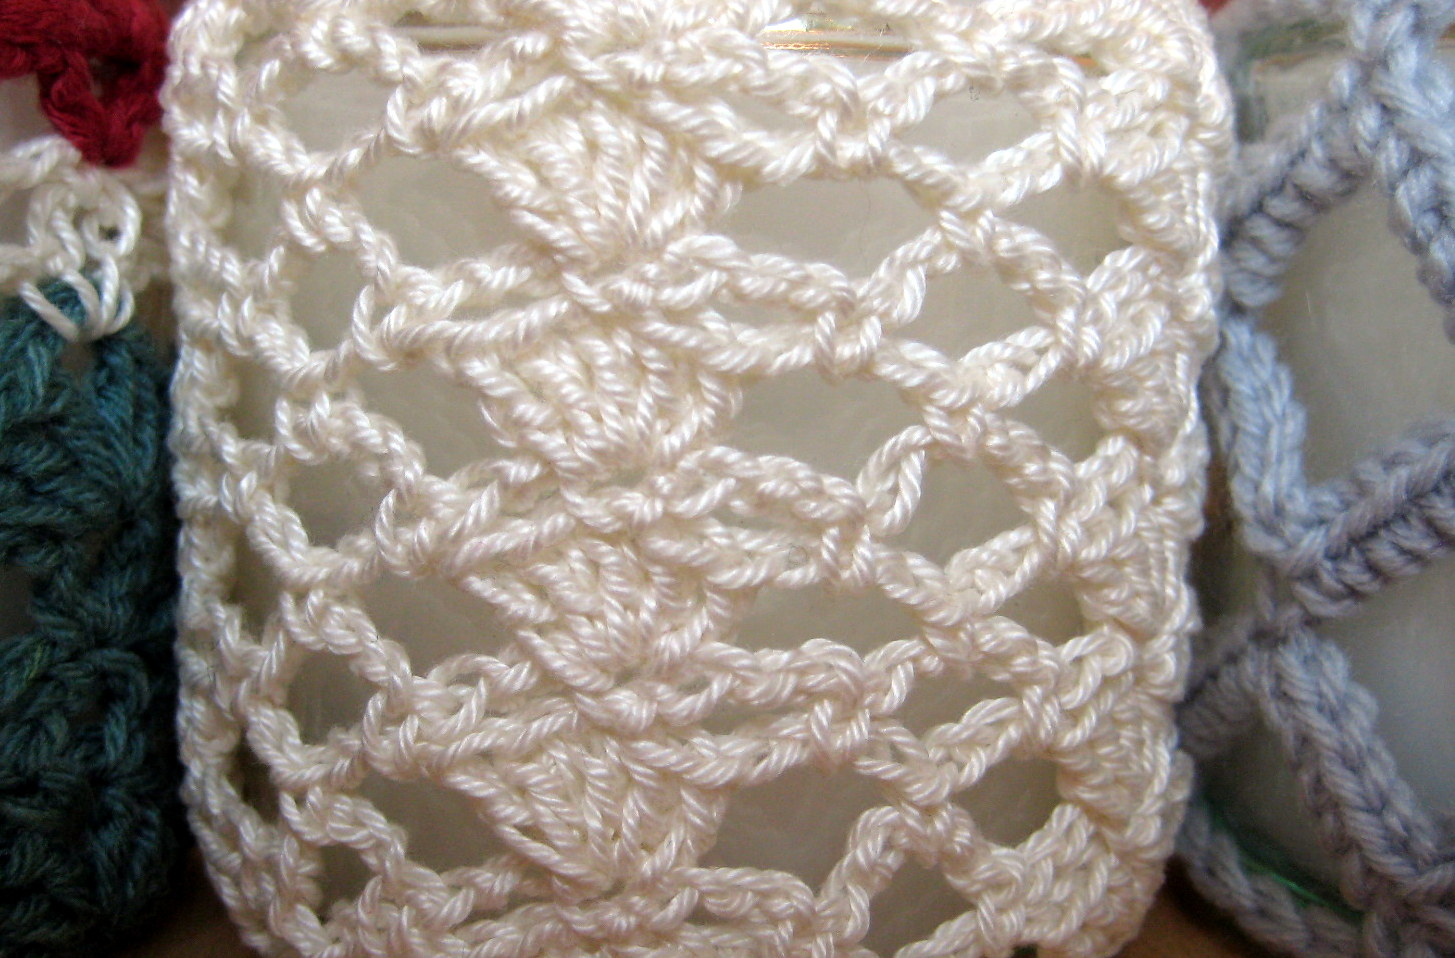 Crochet Patterns Jar Covers : Crochet Jar Cover I: Shells and Lace Make My Day Creative